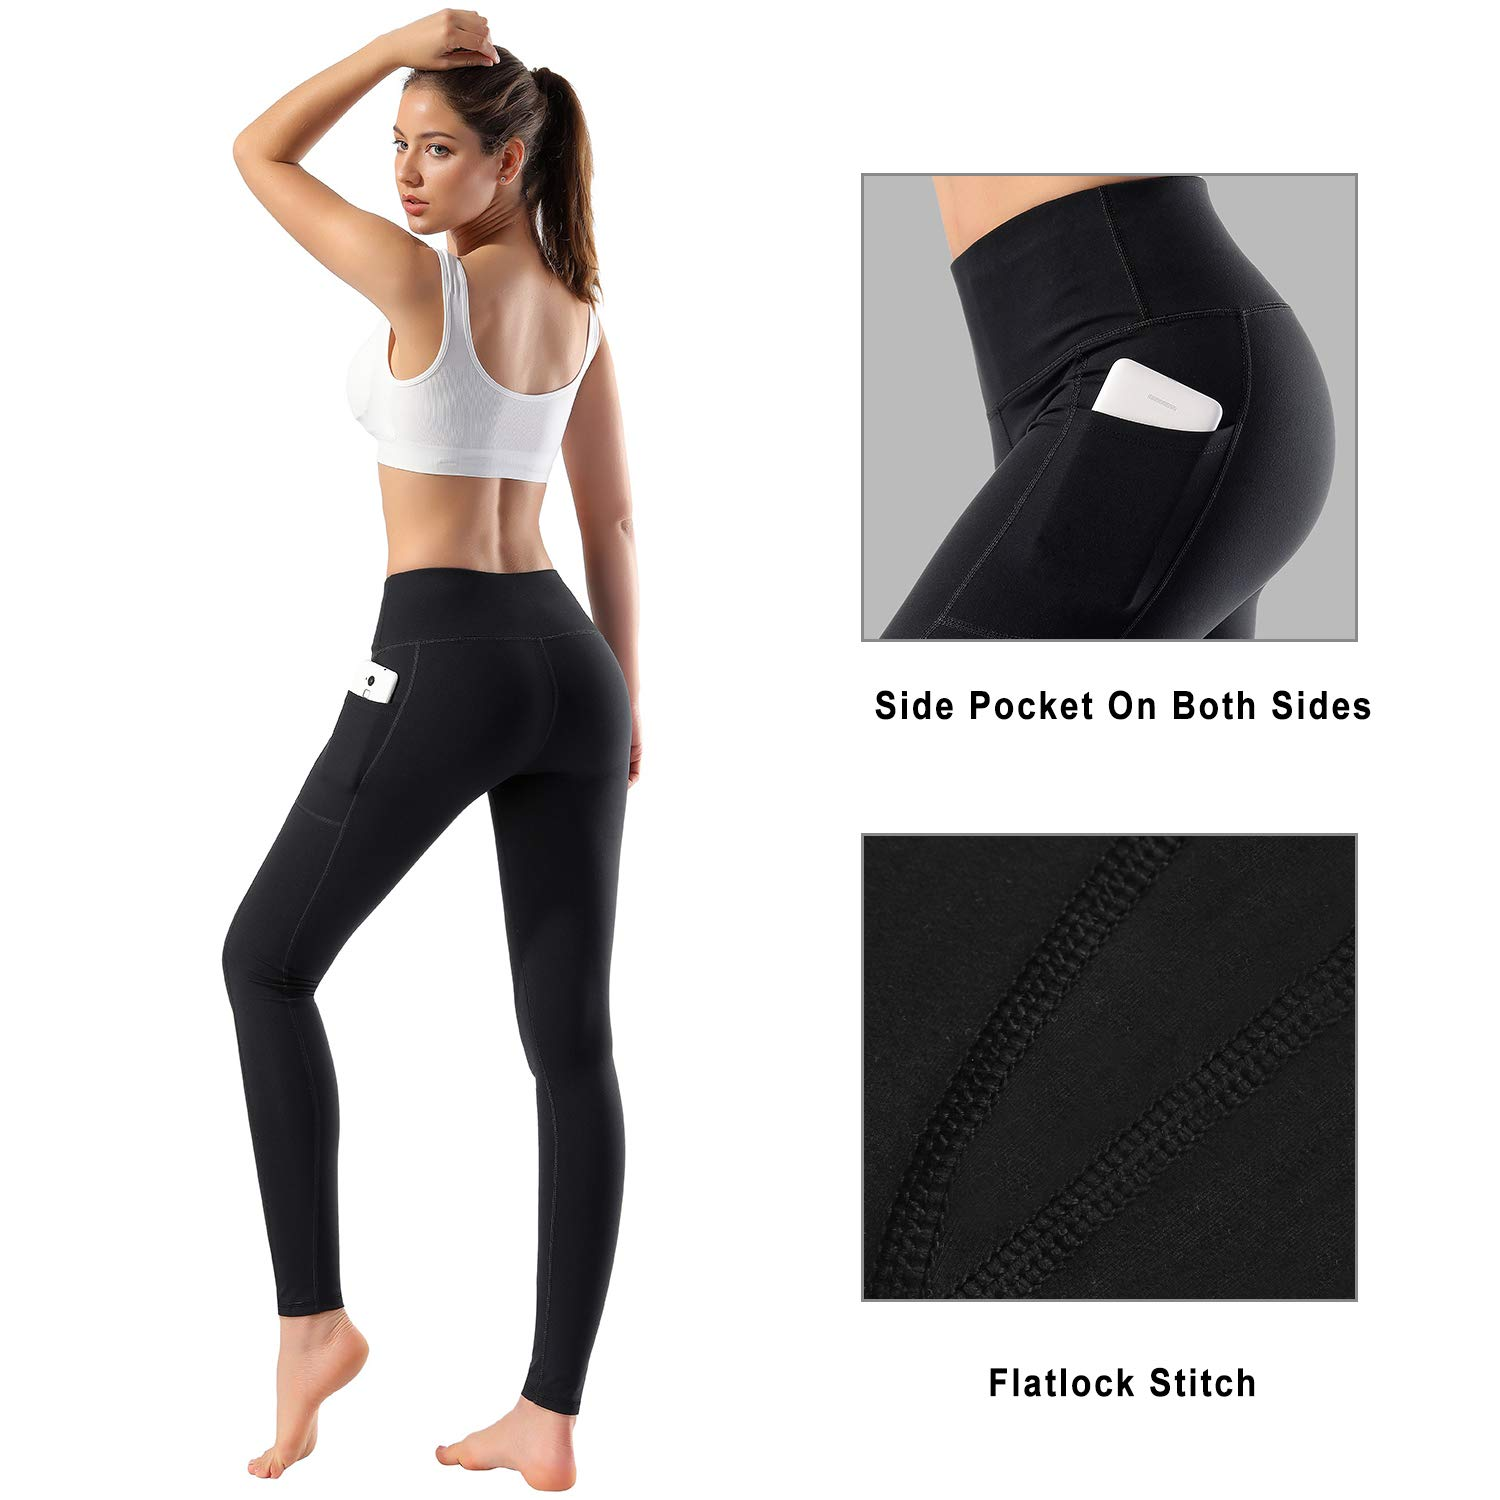 c65abb15d0de5 Amazon.com  Women s High Waist Yoga Pants with Side   Inner Pockets Tummy  Control Workout Running 4 Way Stretch Sports Leggings  Clothing